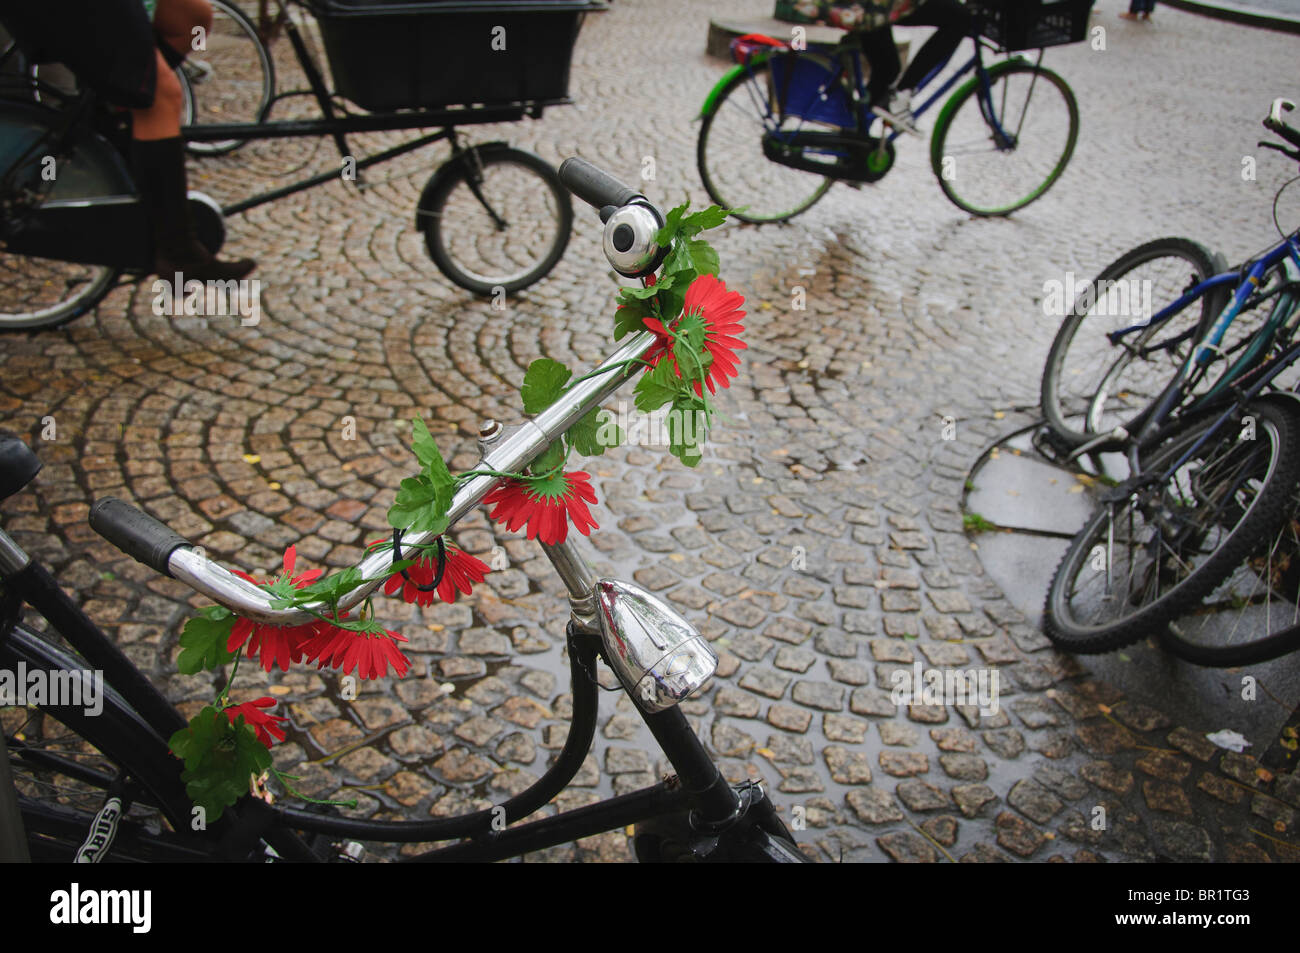 Bicycle handlebars decorated with red, flowers - Stock Image